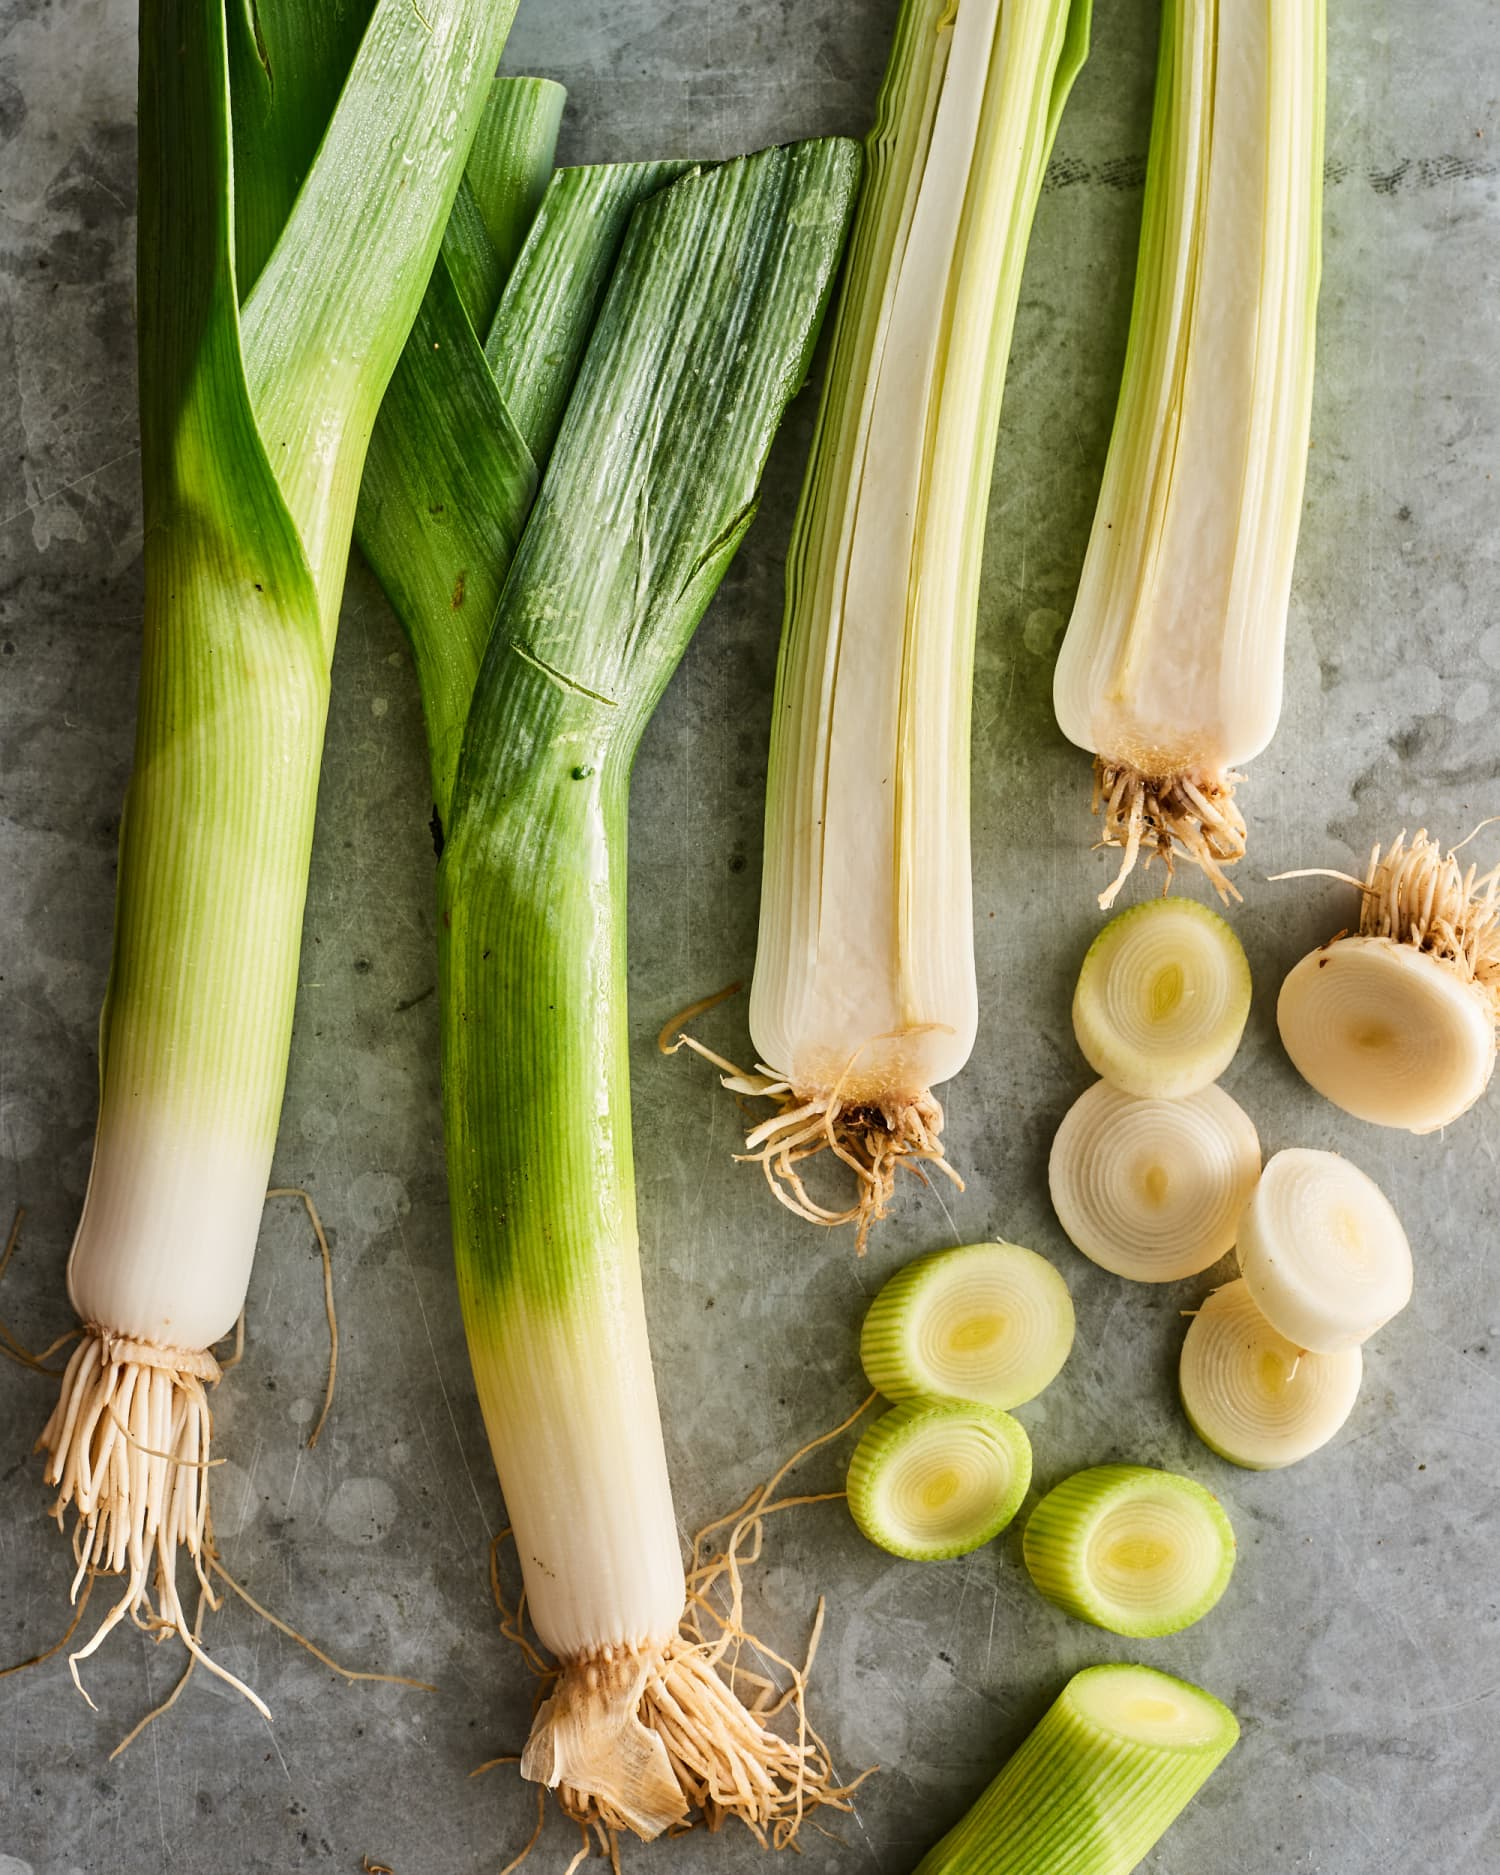 Leeks: The Secret Ingredient That Makes French Dishes So Tasty